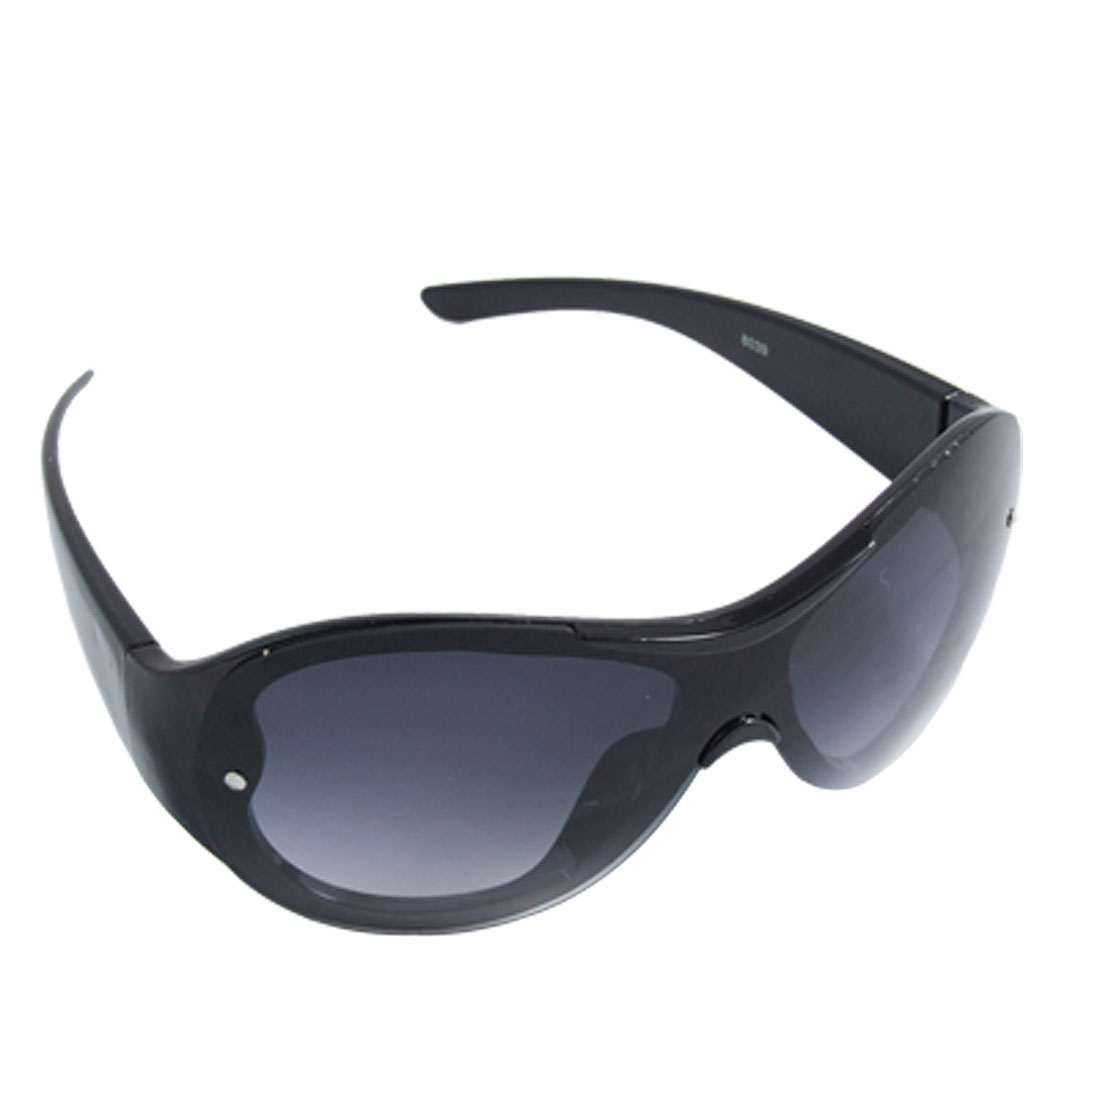 Dark Lens Black Plastic Full-rim Leisure Sunglasses for Kids